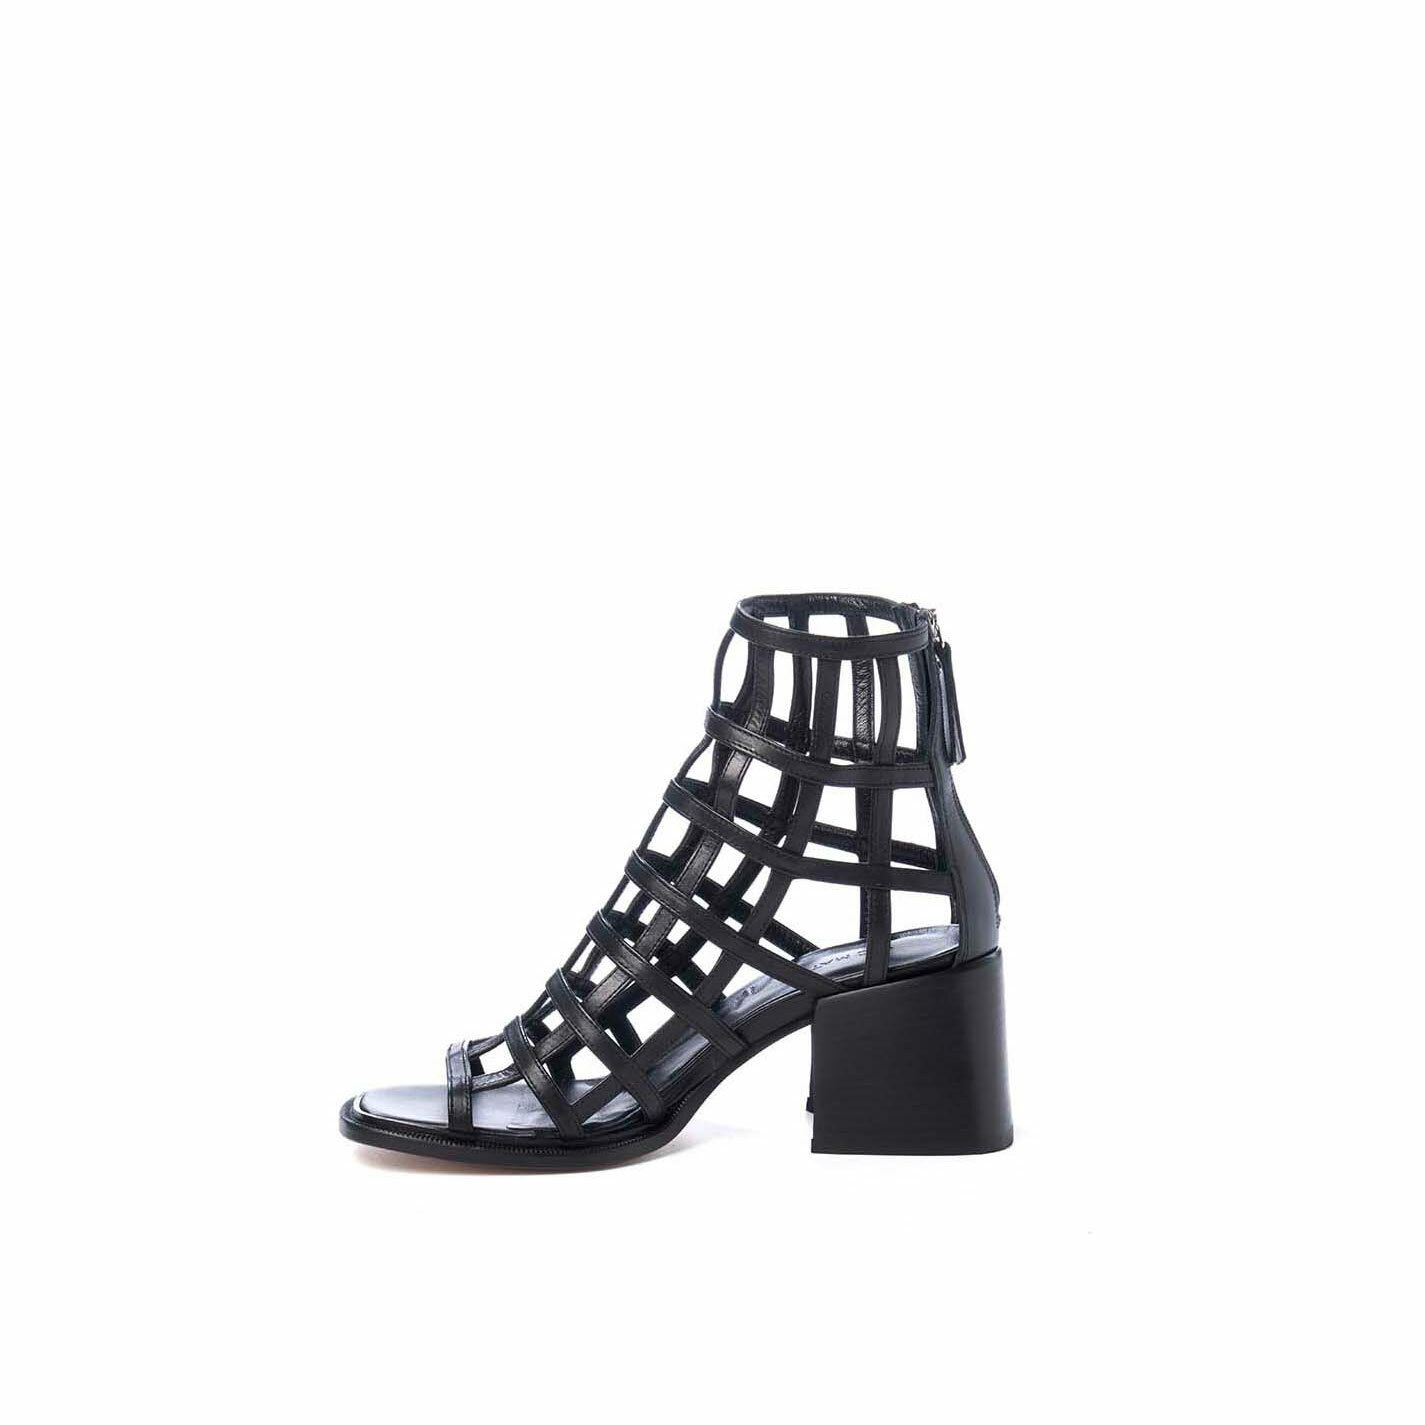 Black cage-effect ankle boots with open toe